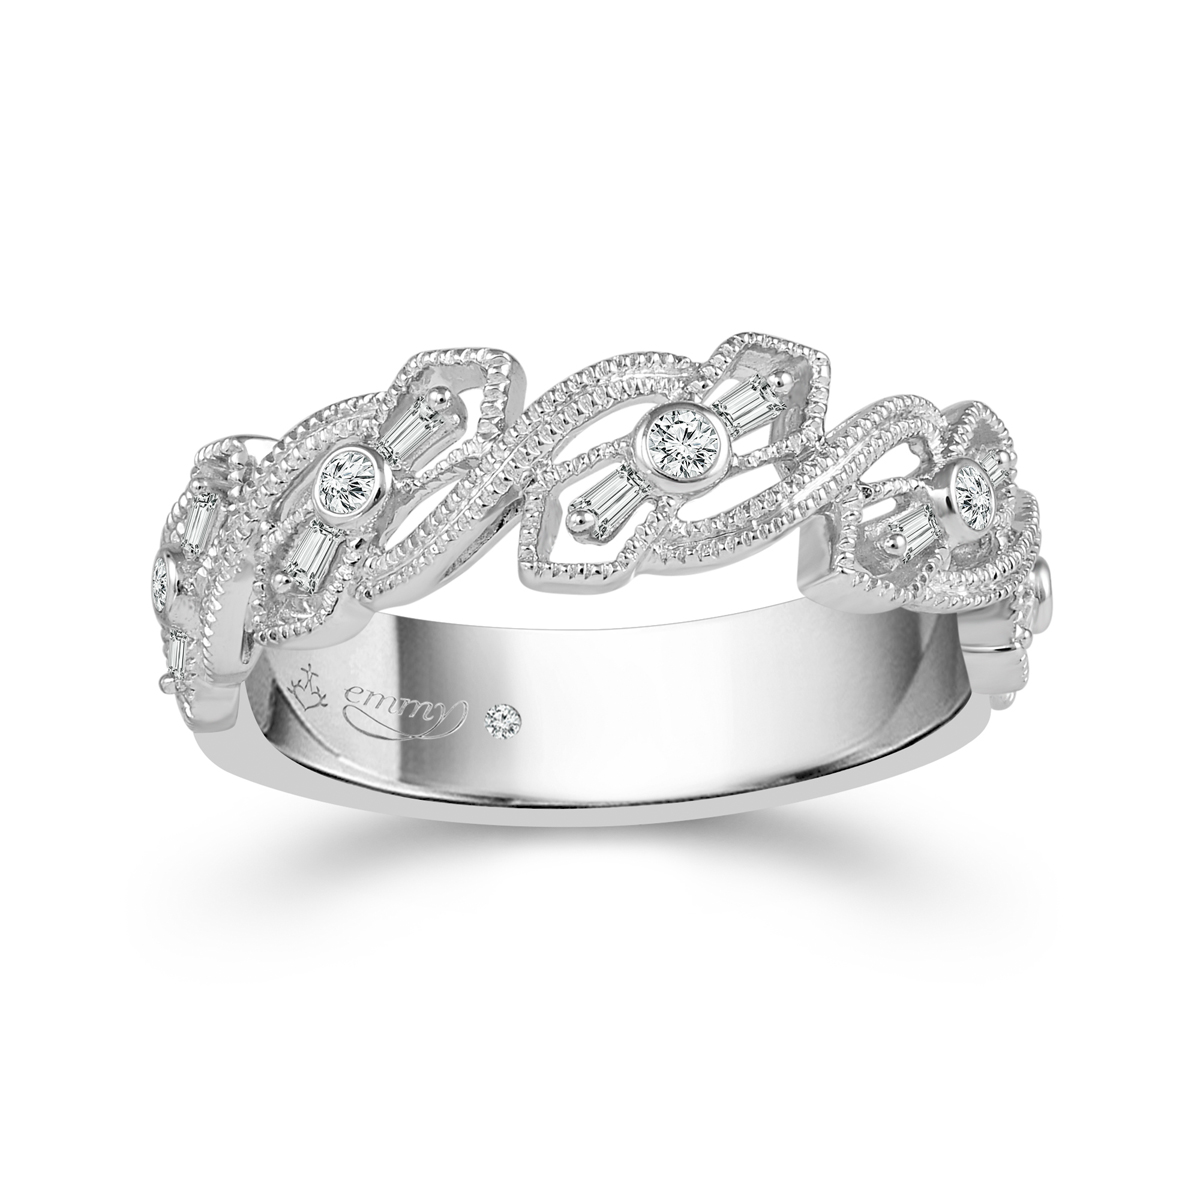 Art Deco Inspired Wedding Rings and Jewellery From Emmy London & H ...